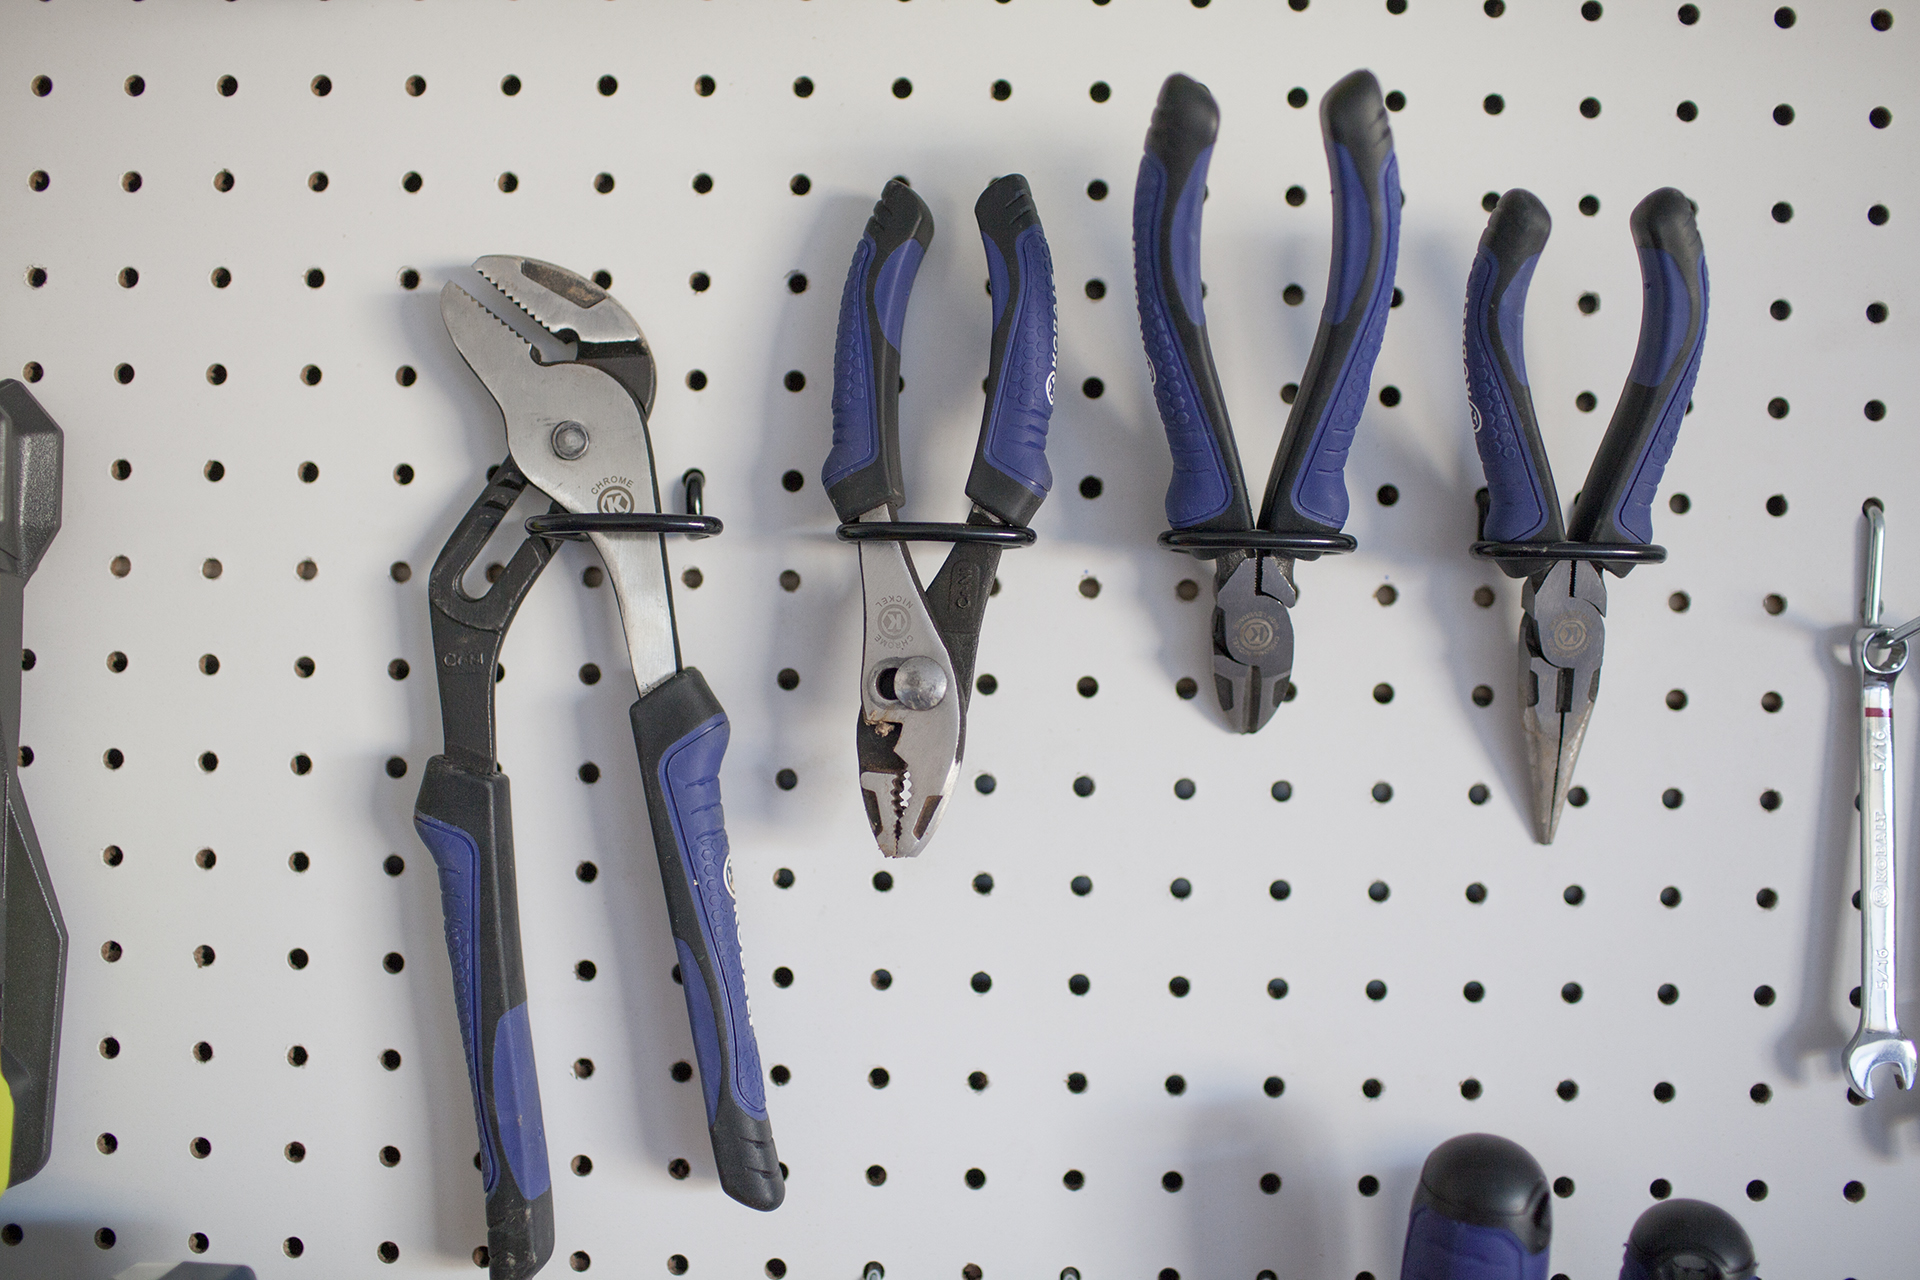 How to organize tools with a garage pegboard life storage blog hang pegboard accessories and tools to organize garage solutioingenieria Images